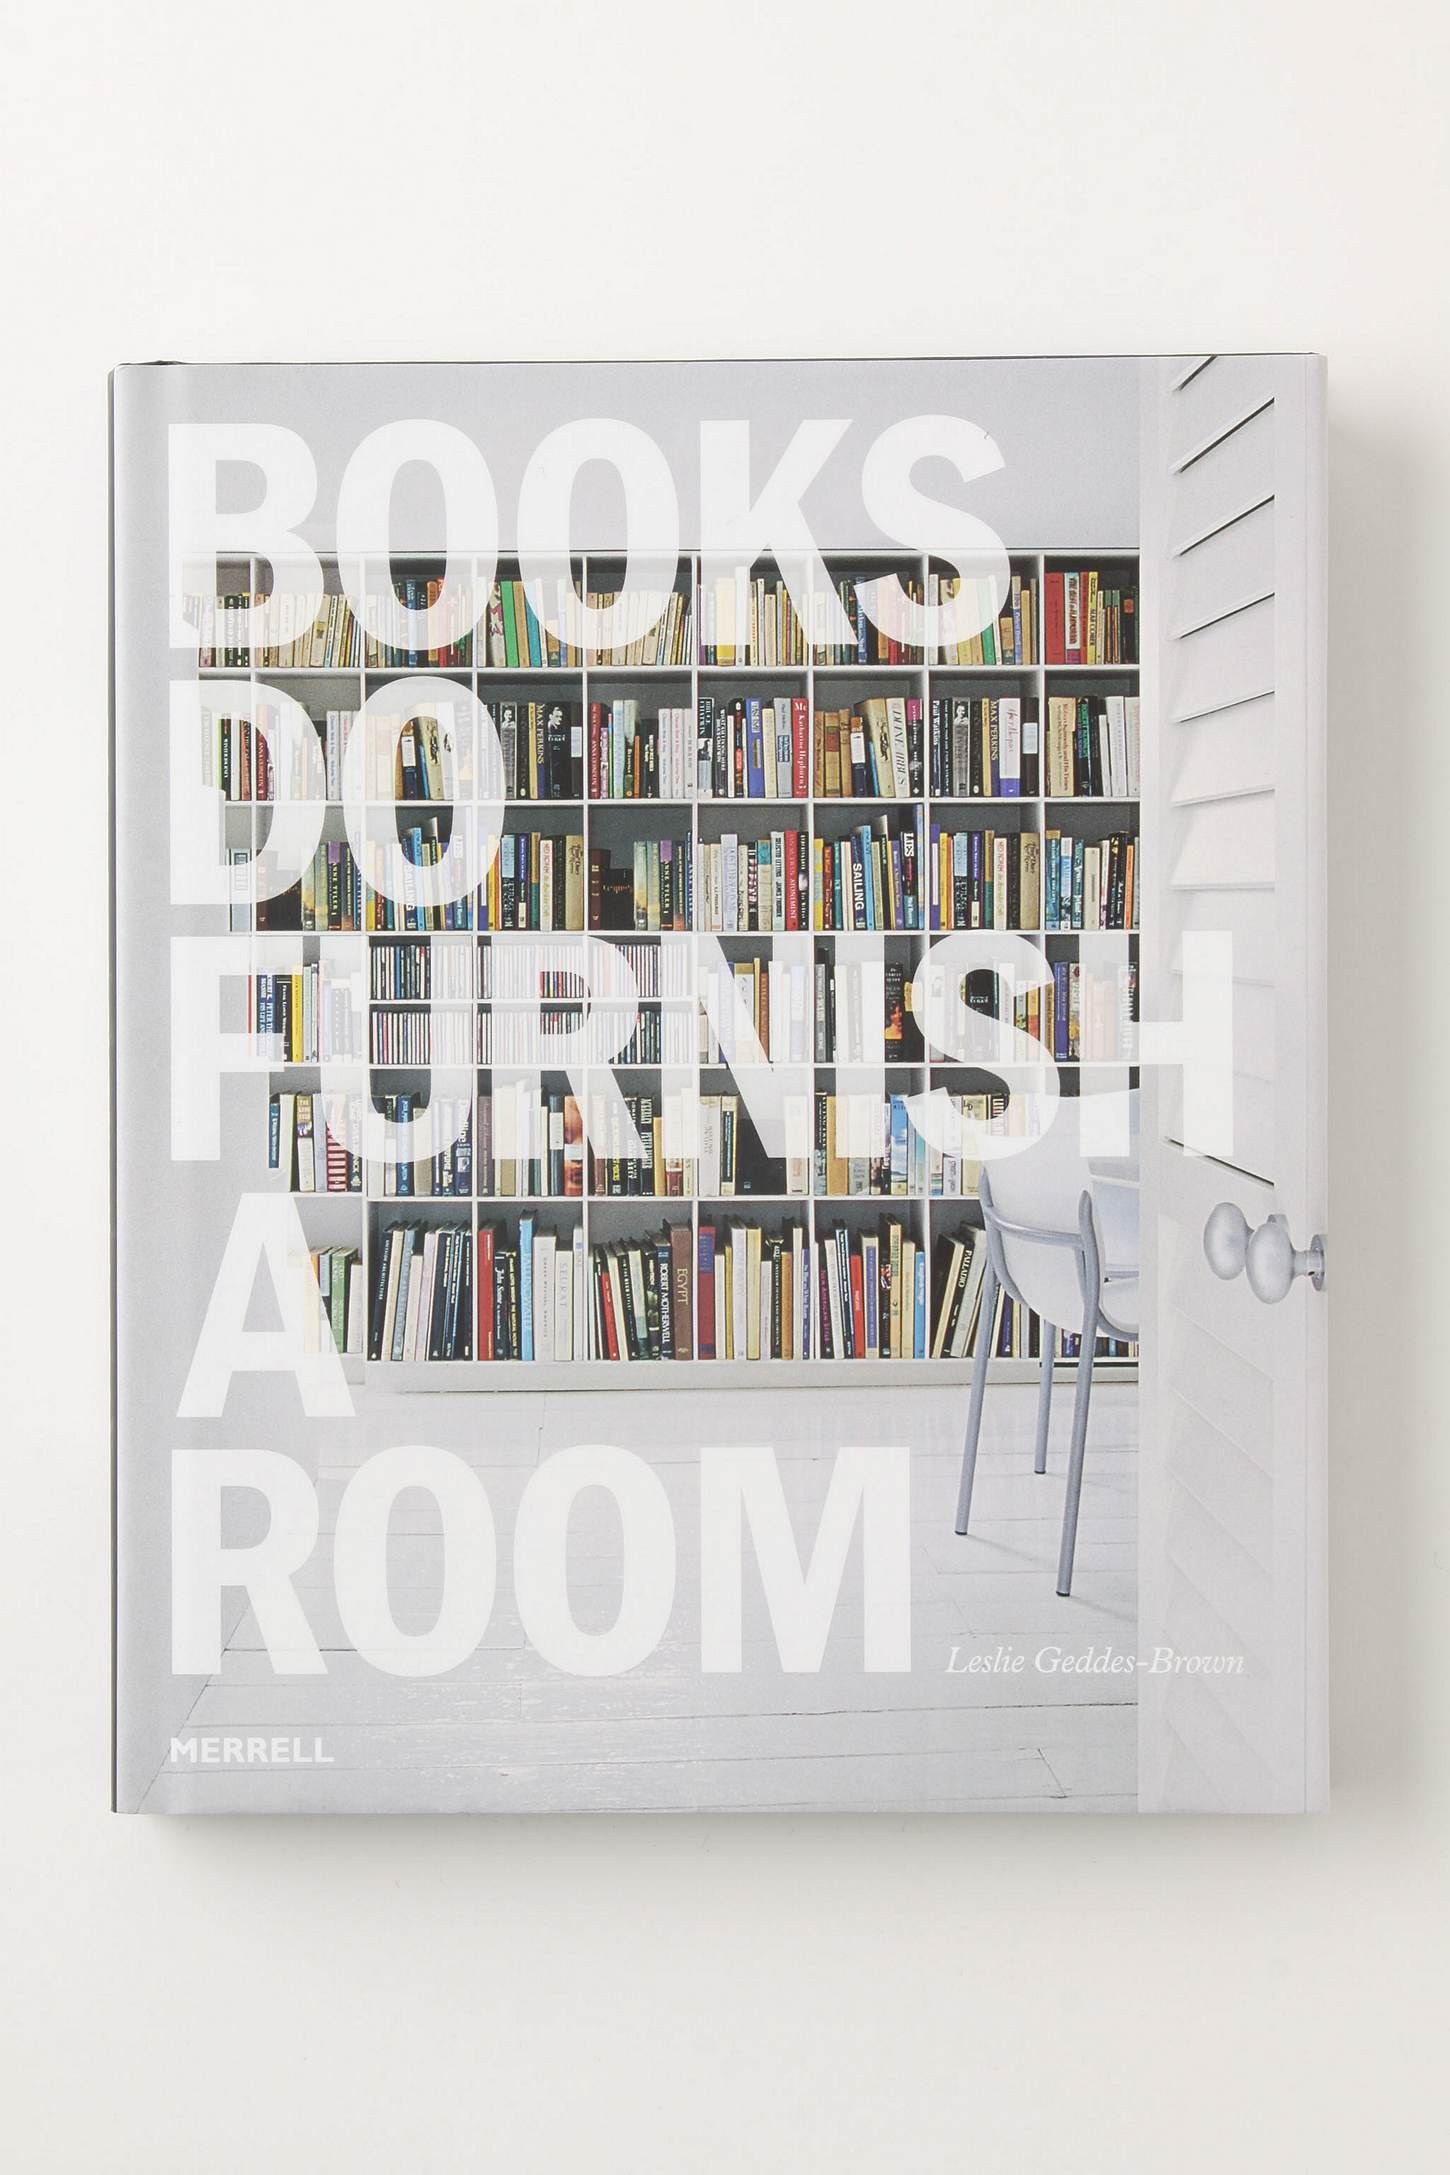 Books Do Furnish A Room, by Leslie Geddes-Brown